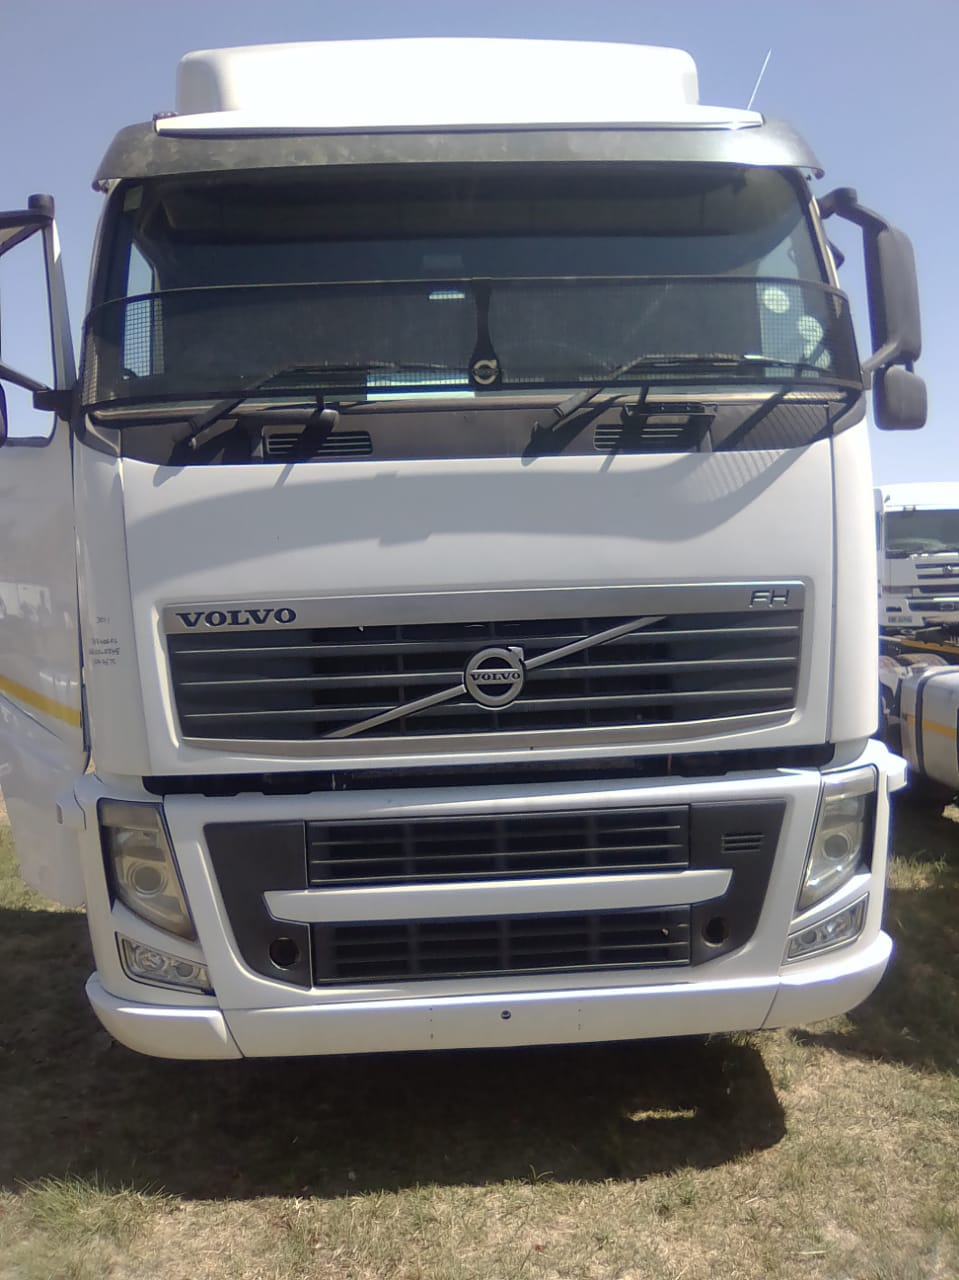 GUARANTEED TO BEAT OR MATCH ANY PRICES ON ALL TRUCKS AND TRAILERS